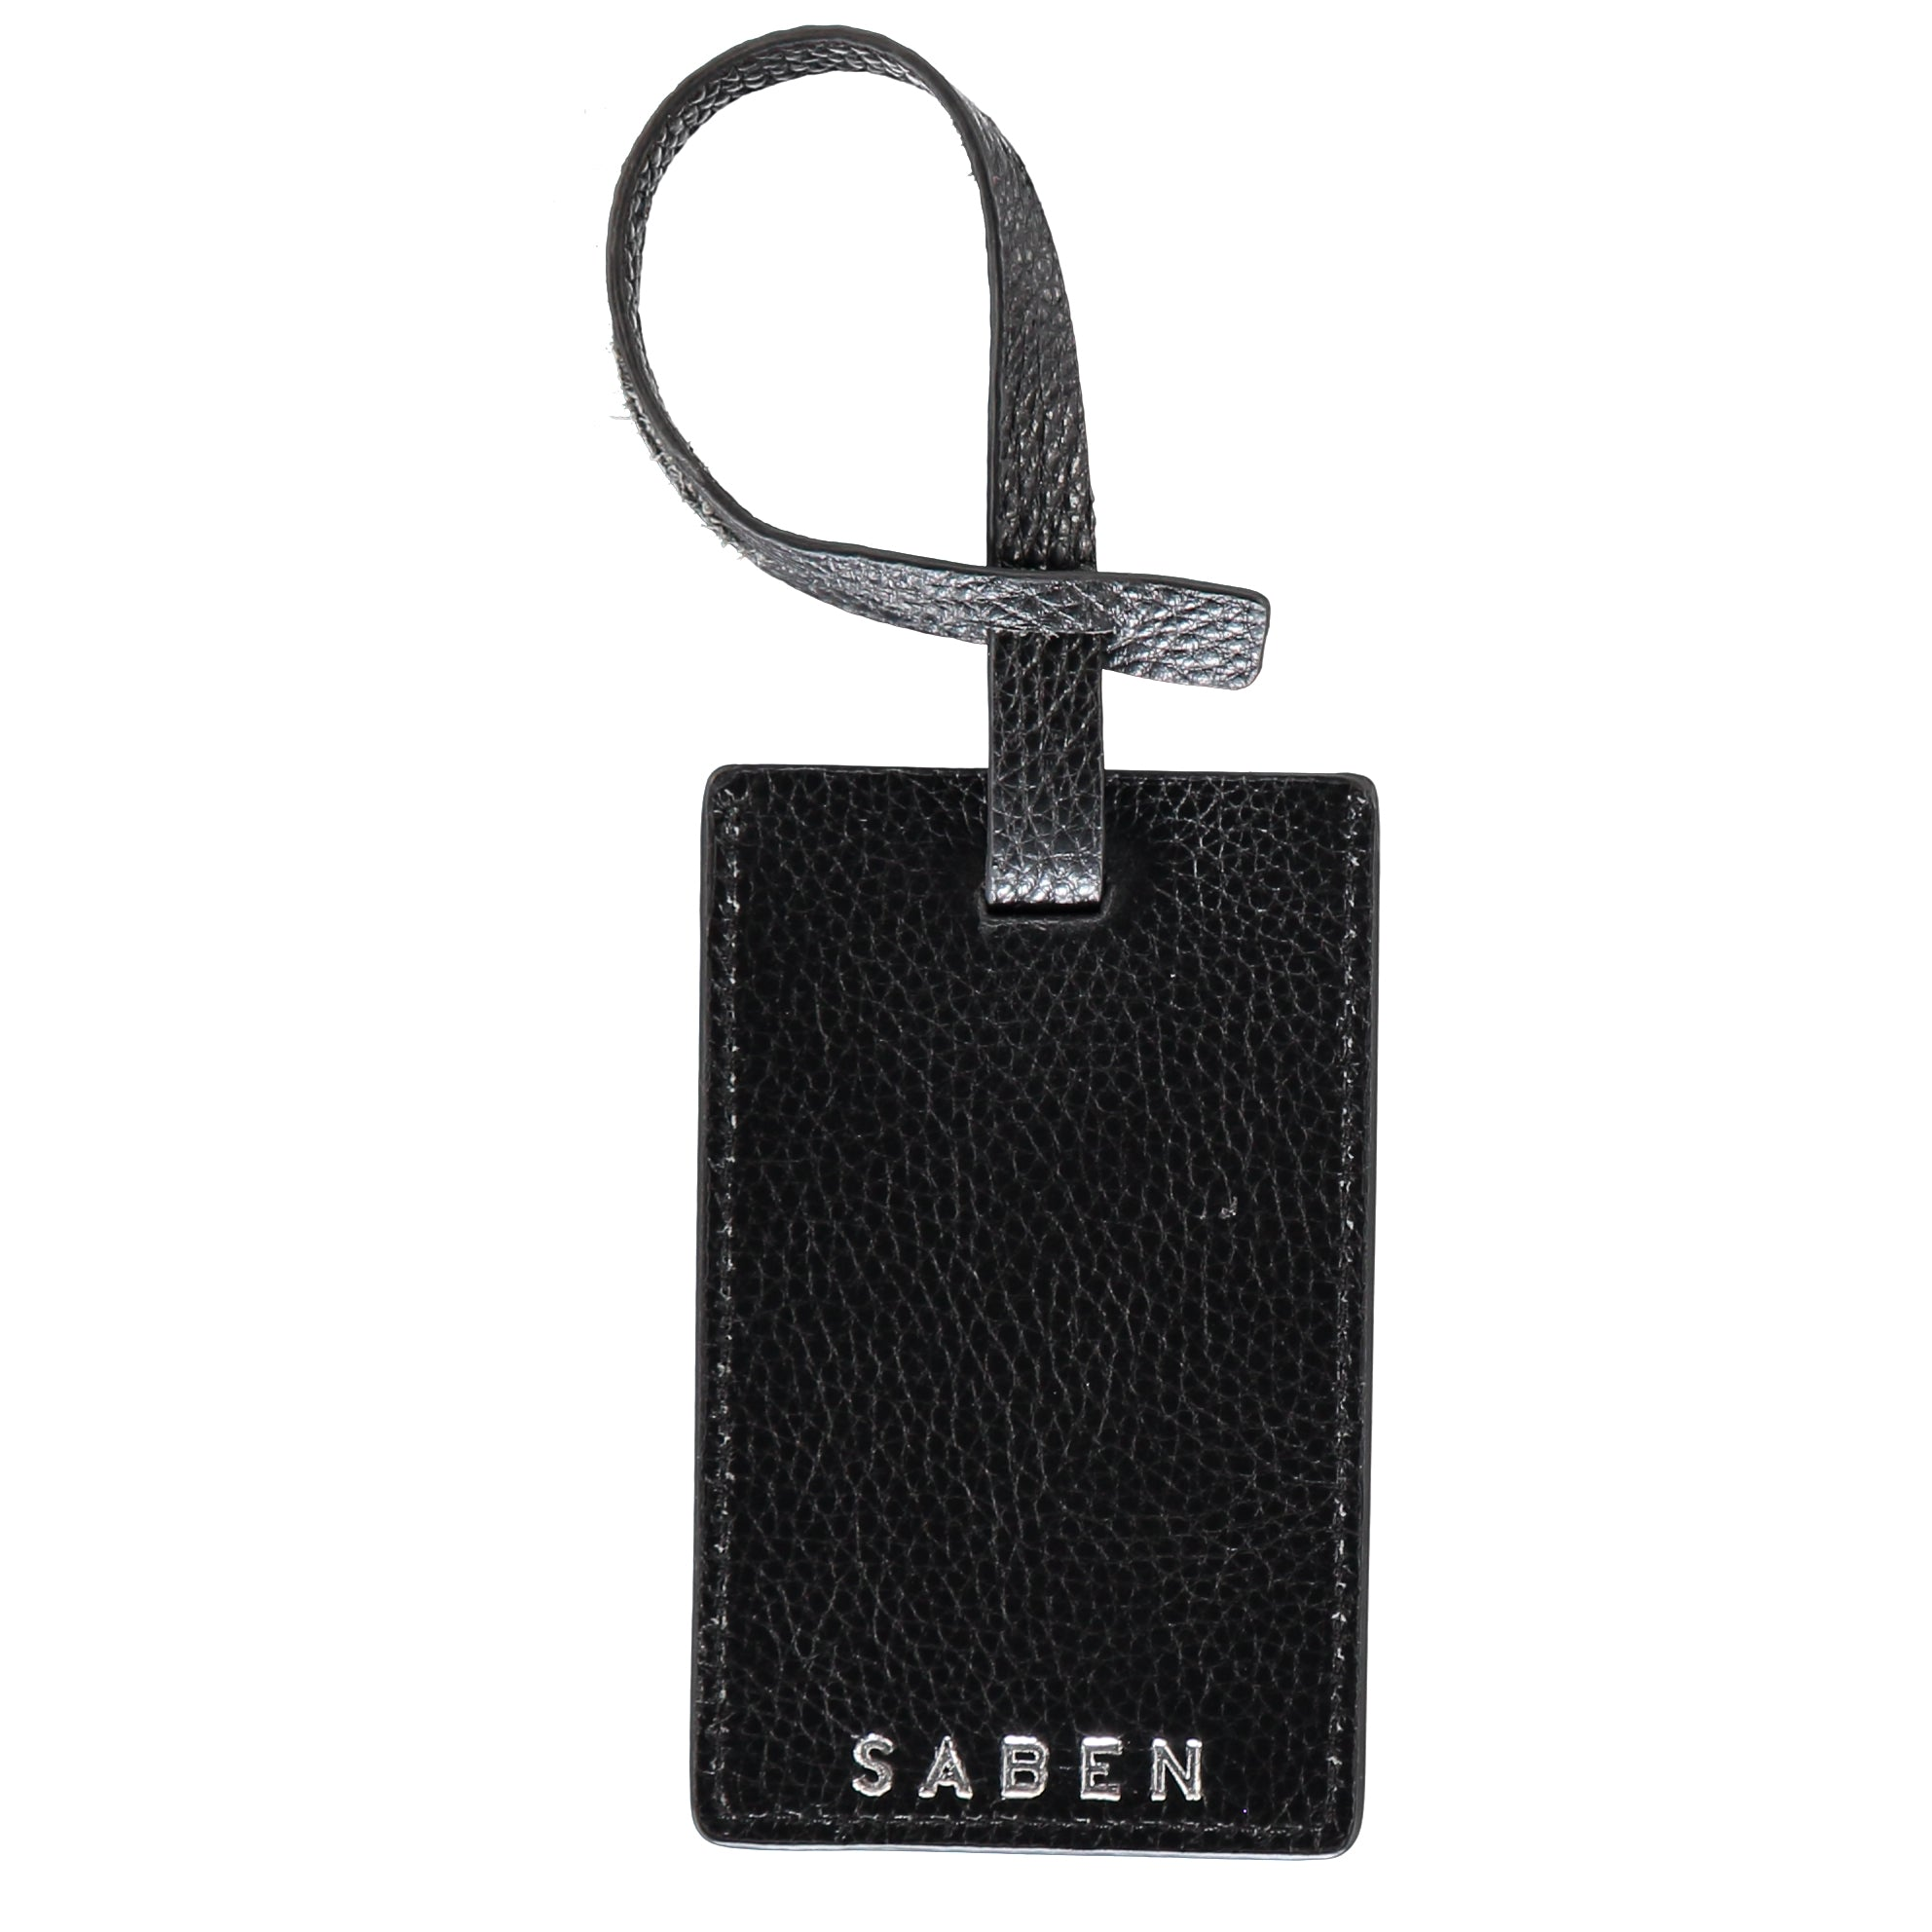 Saben luggage tag perfect for any suitcase or carry on ideal for travel